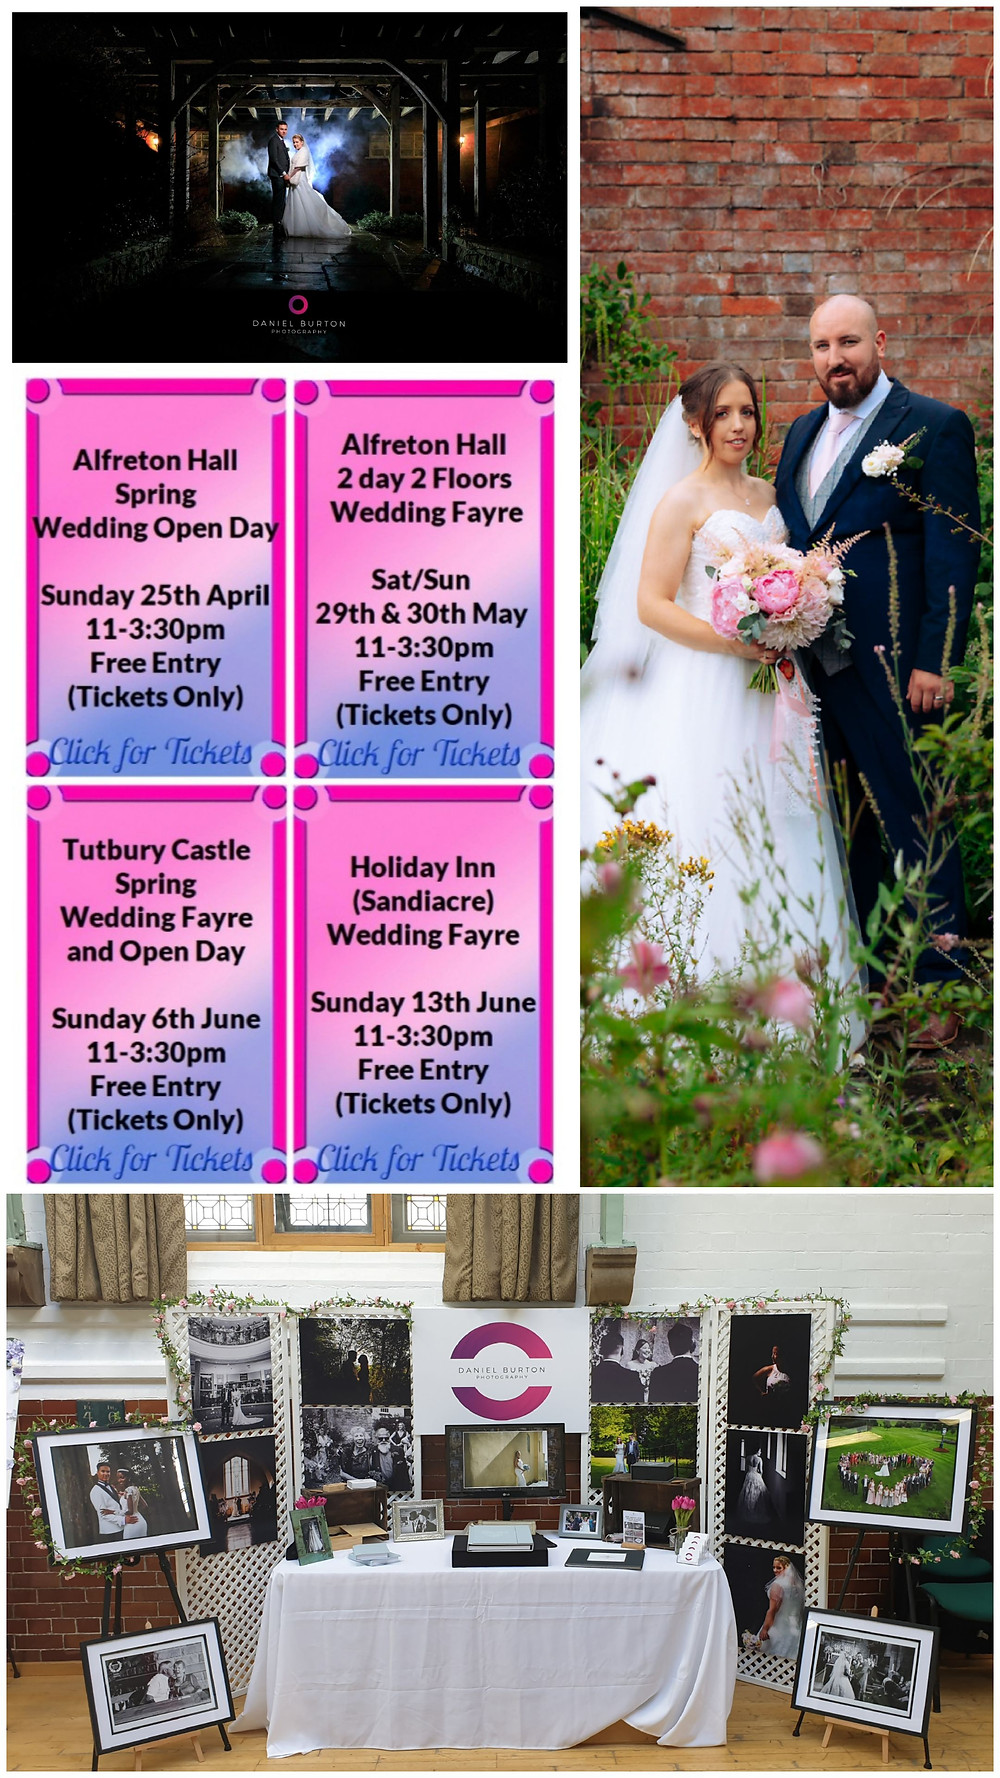 The return of wedding events - these are few coming up in the Derbyshire area